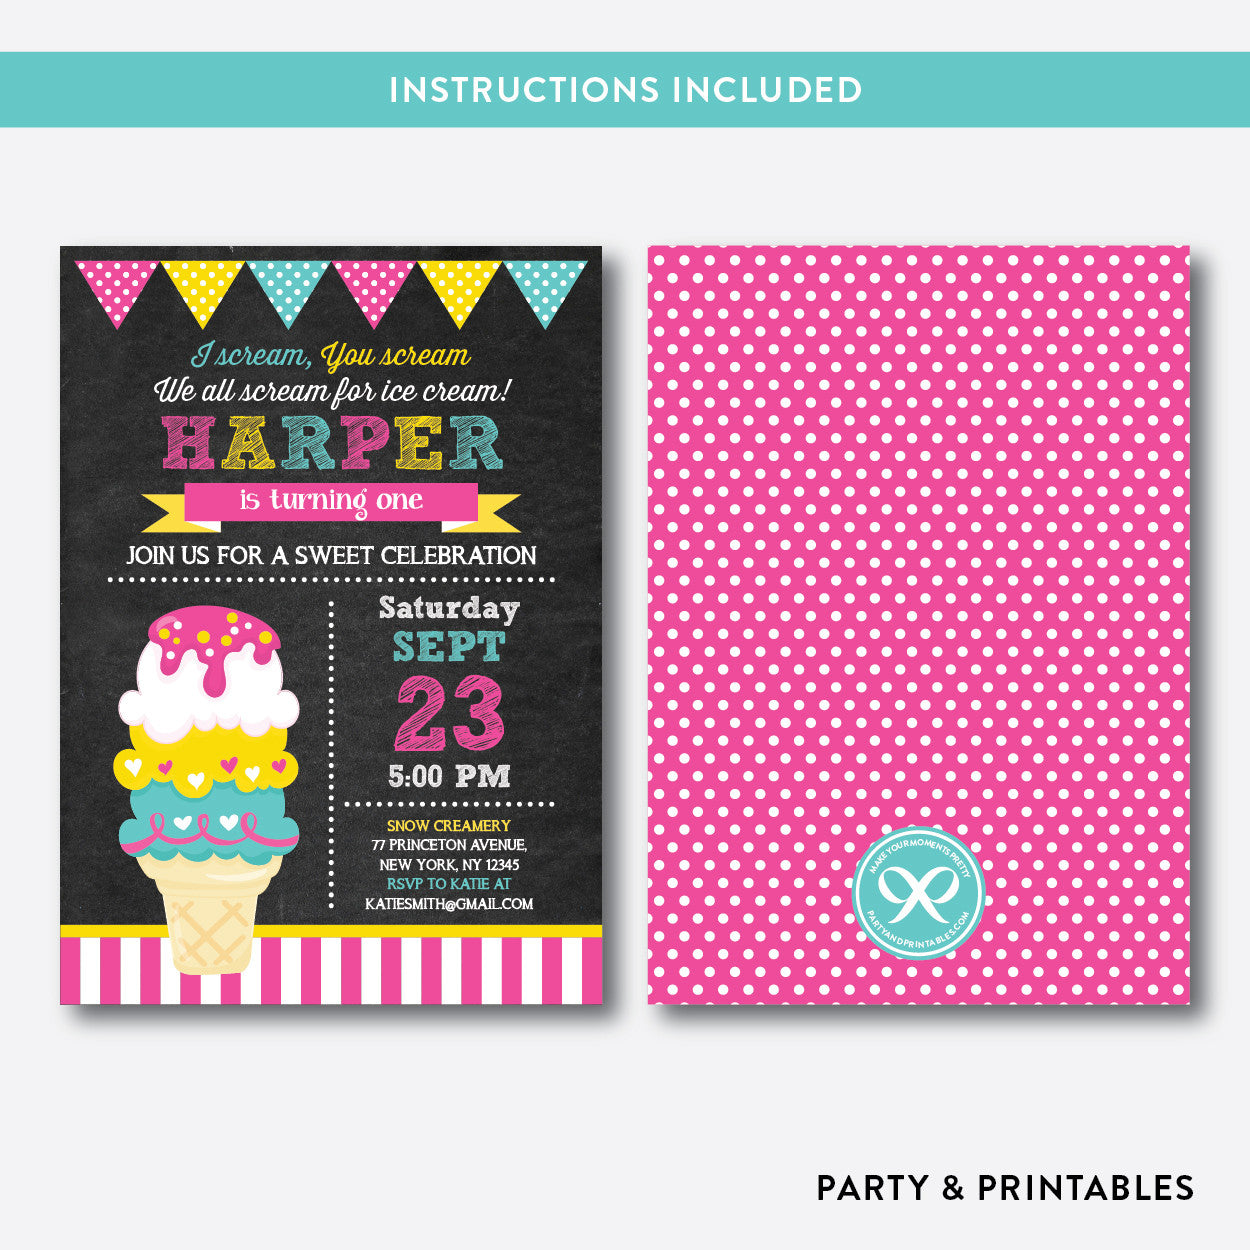 Fancy Ice Cream Chalkboard Kids Birthday Invitation / Editable / Instant Download (CKB.315), invitation - Party and Printables